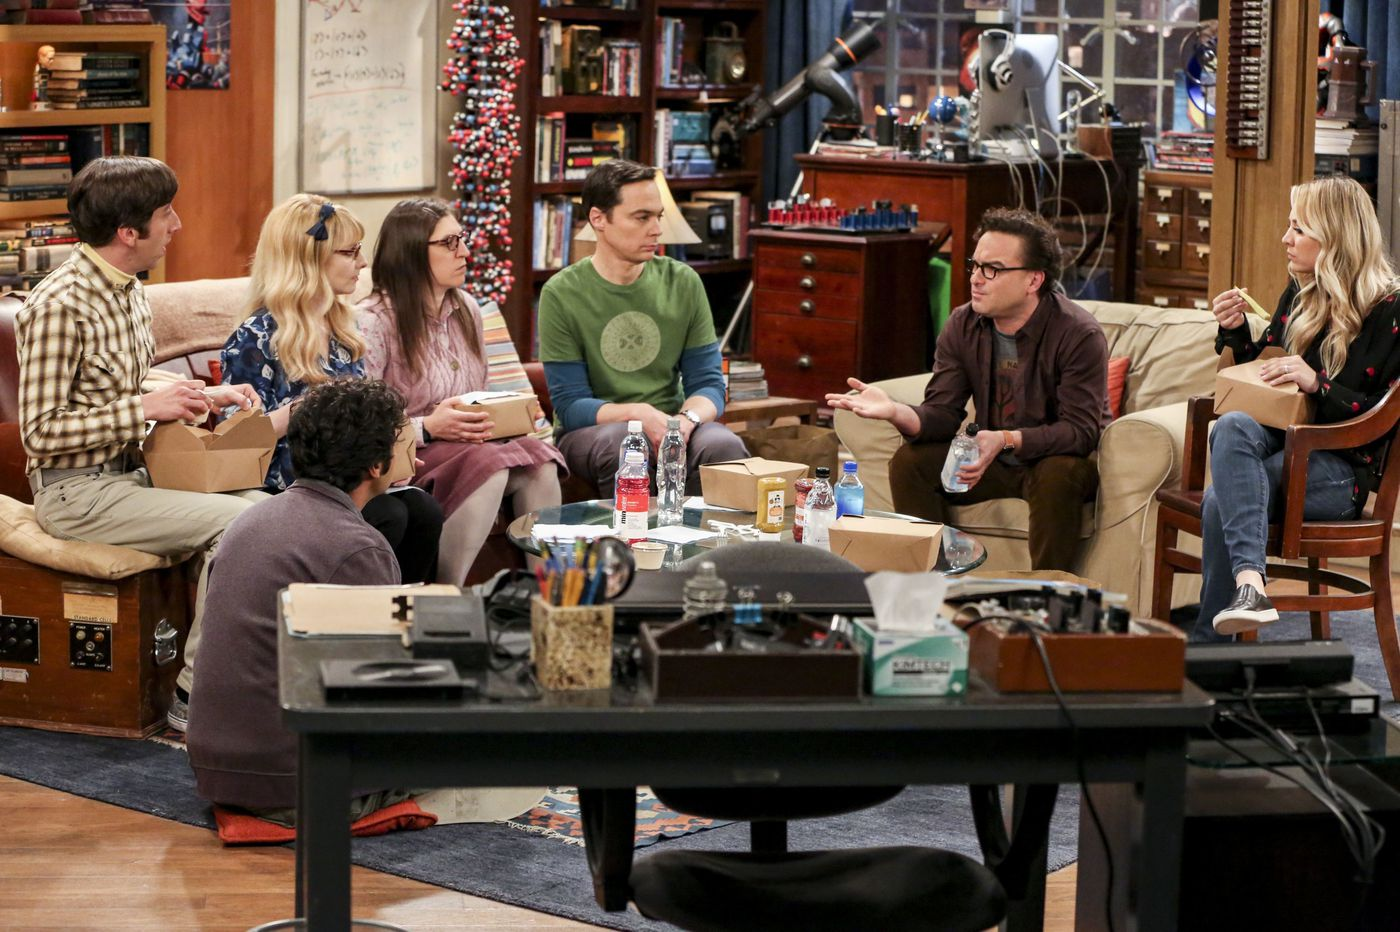 TV picks: 'Big Bang Theory' finale, 'Game of Thrones,' 'Catch-22,' and more